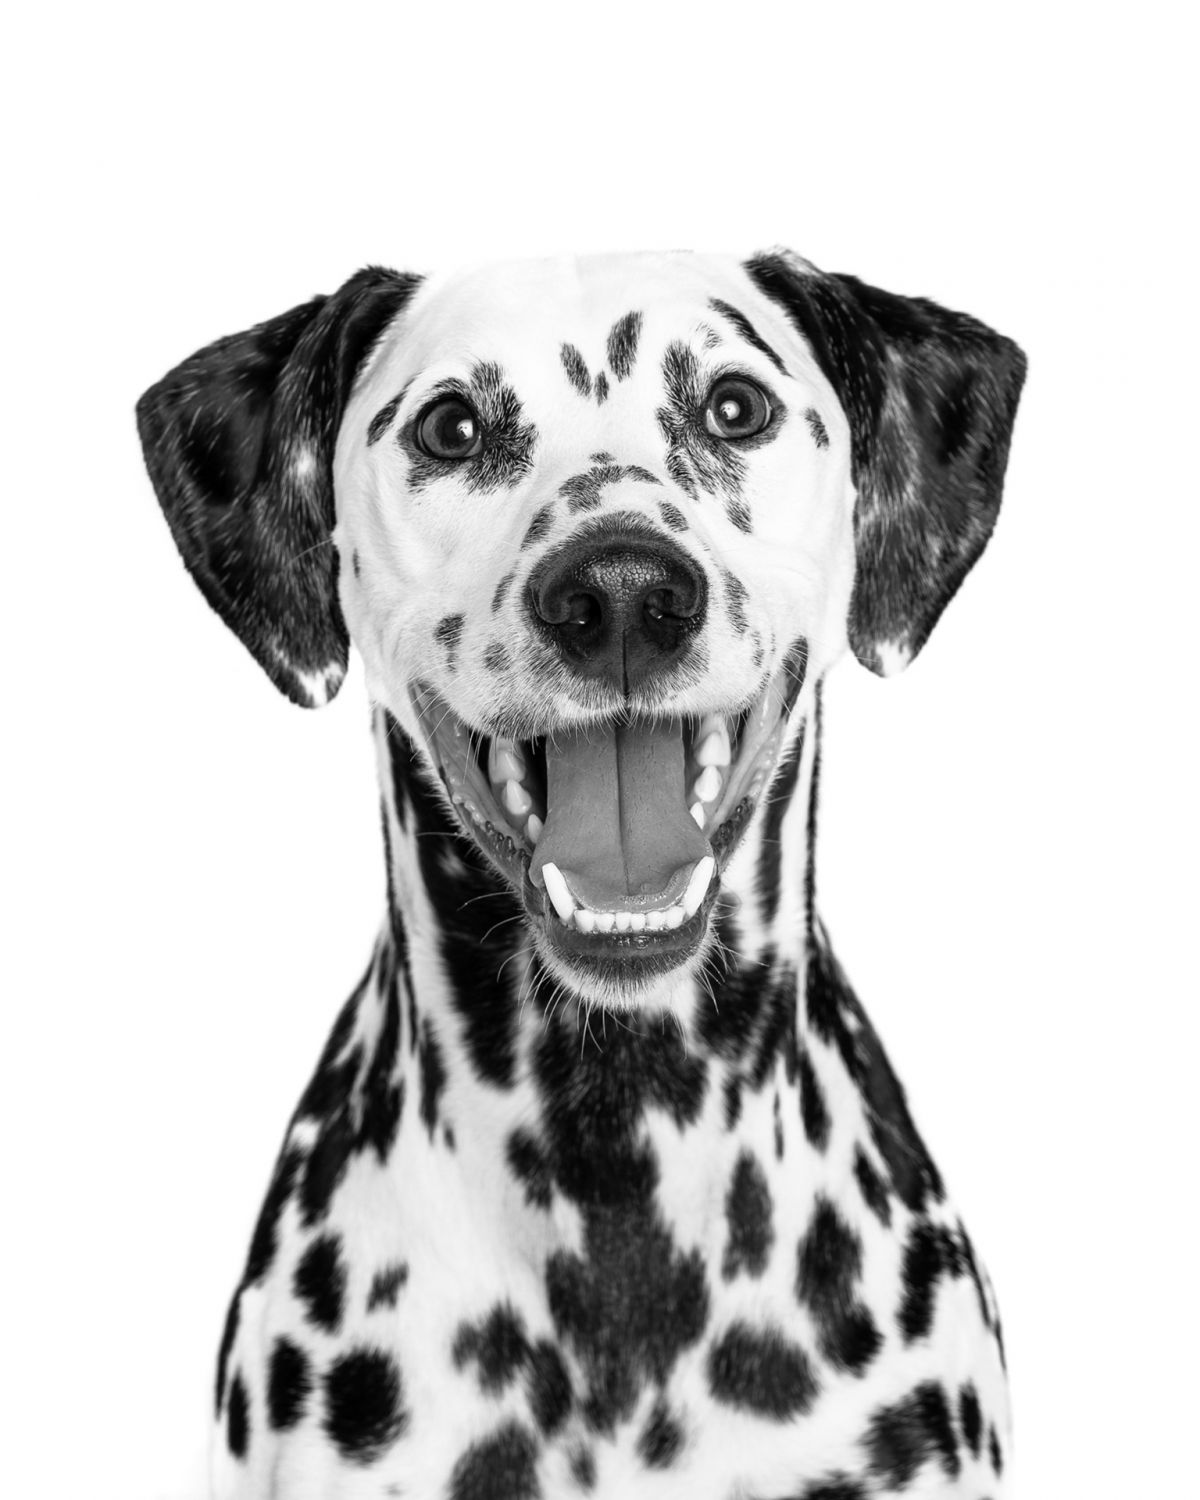 Black and White Dalmation on White Background